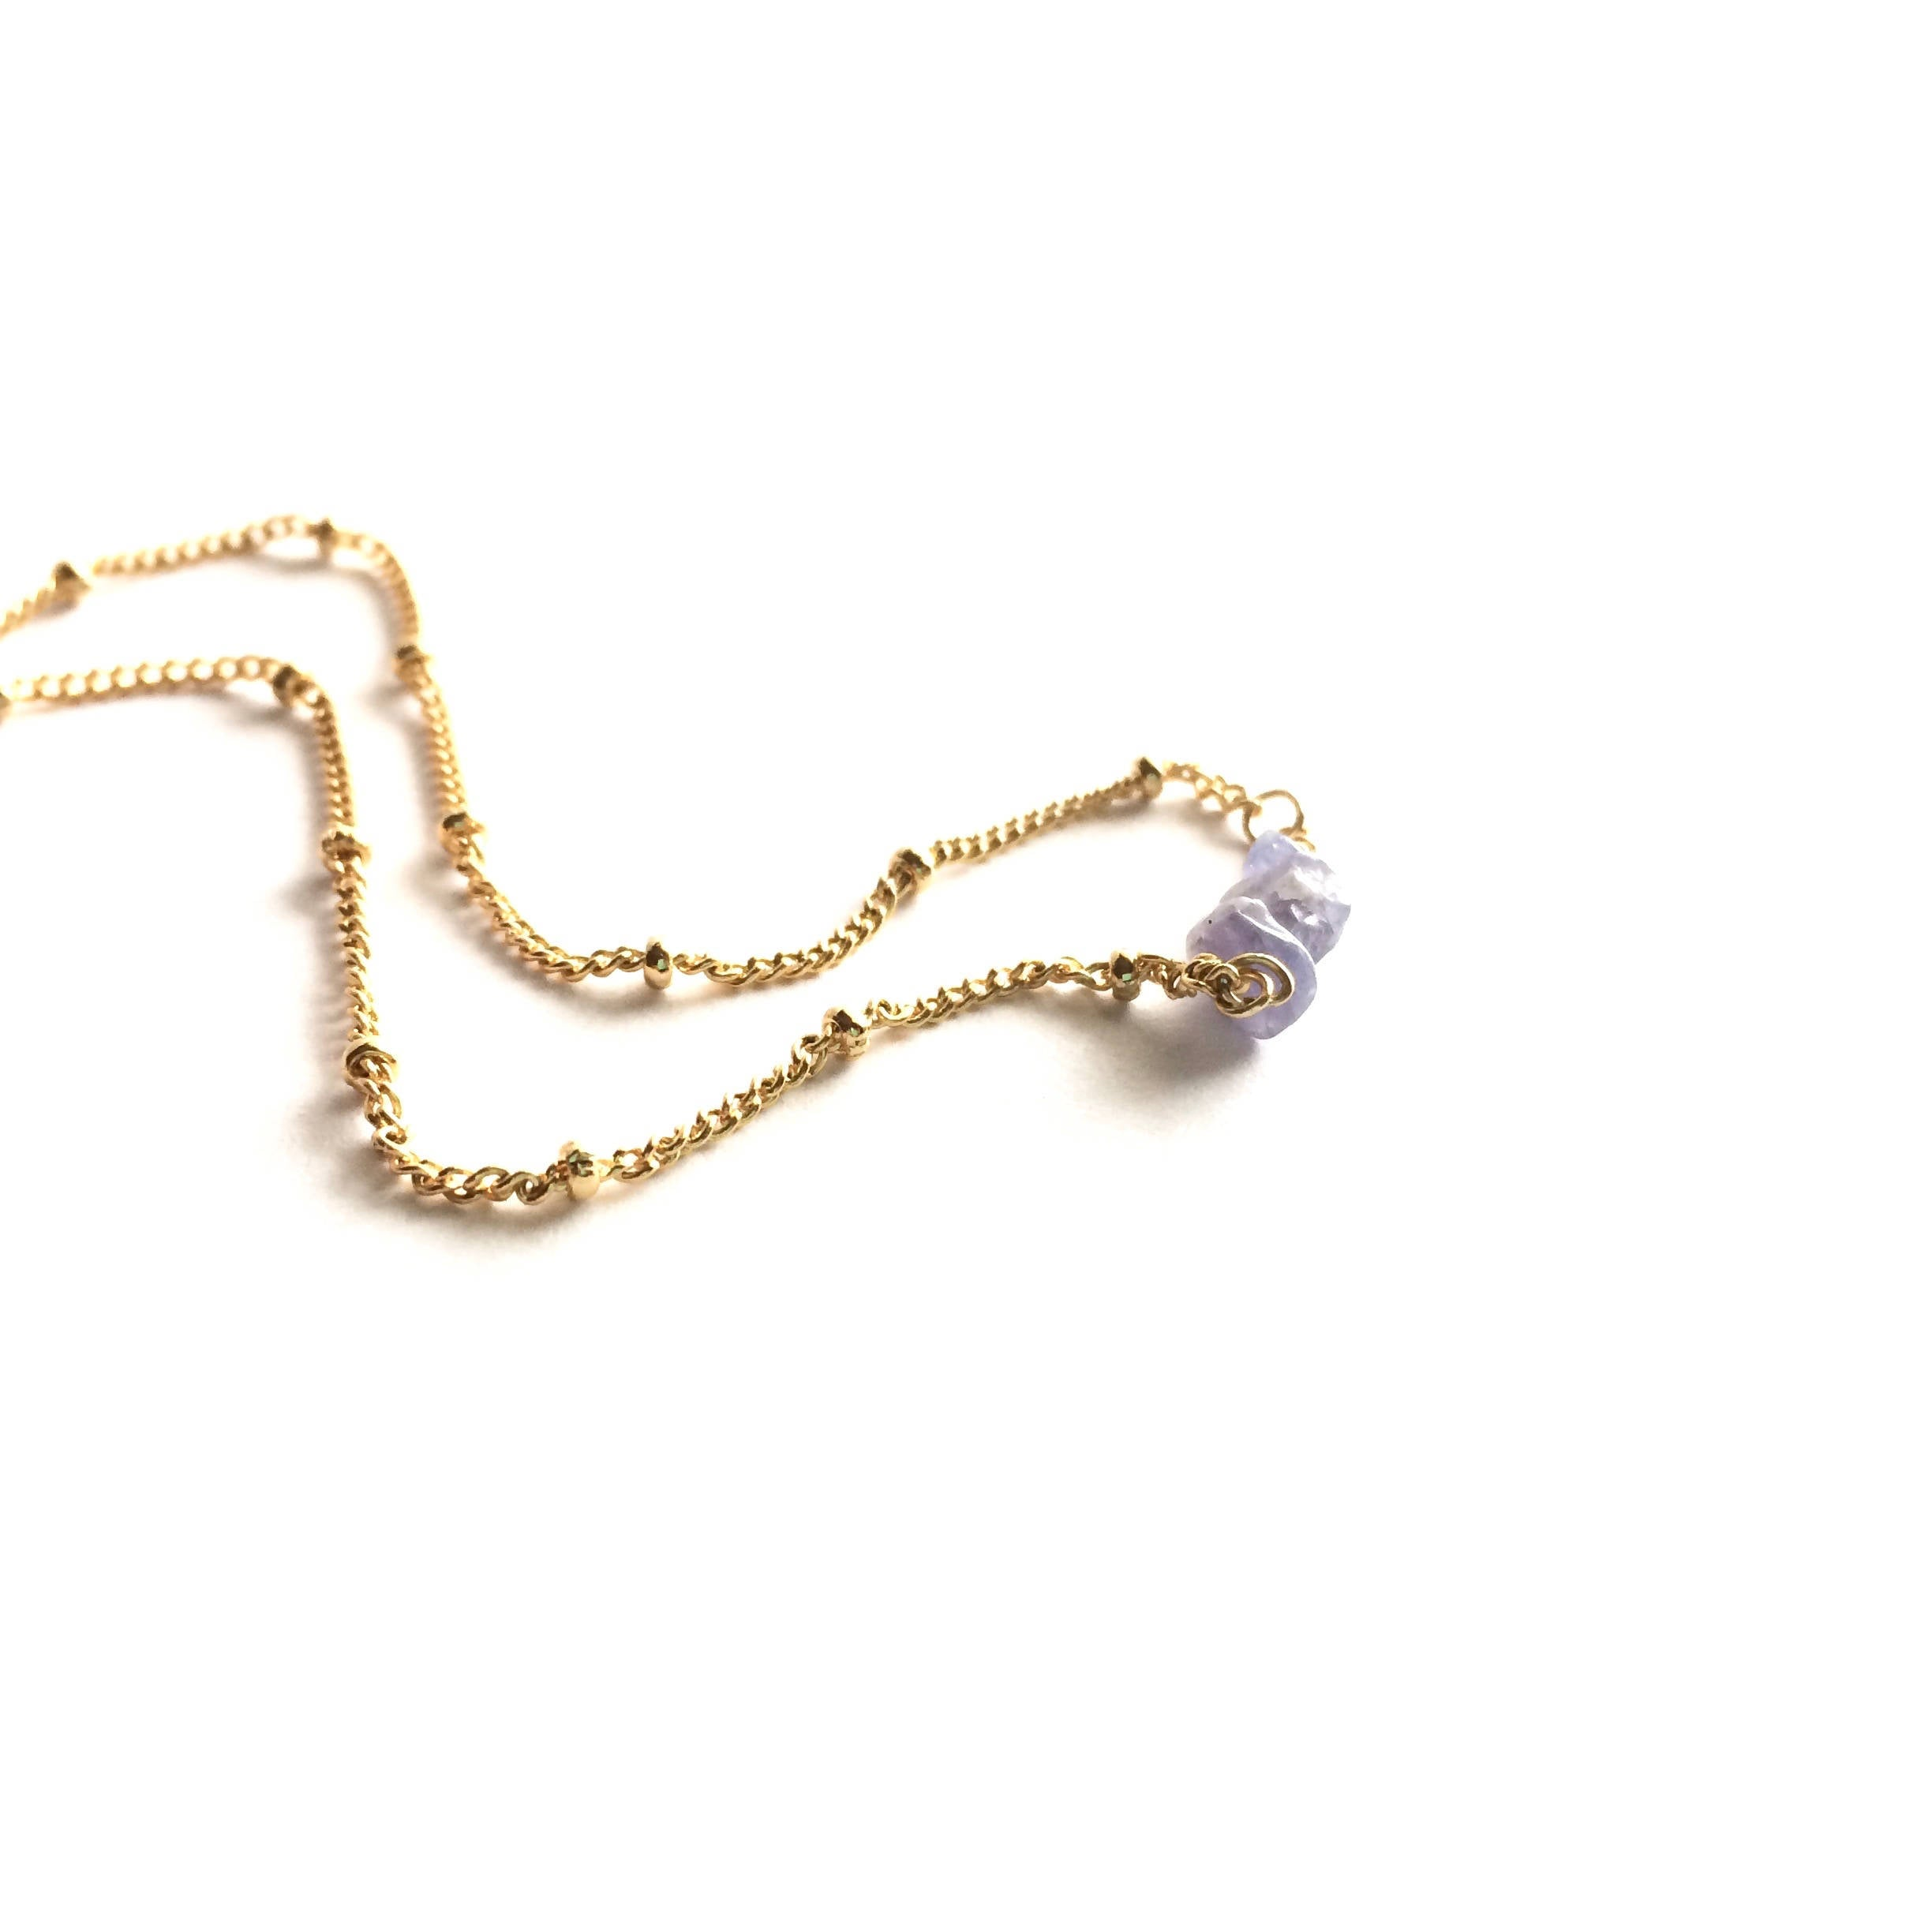 Raw Tanzanite Satellite Chain Rough Gemstone Necklace | IB Jewelry